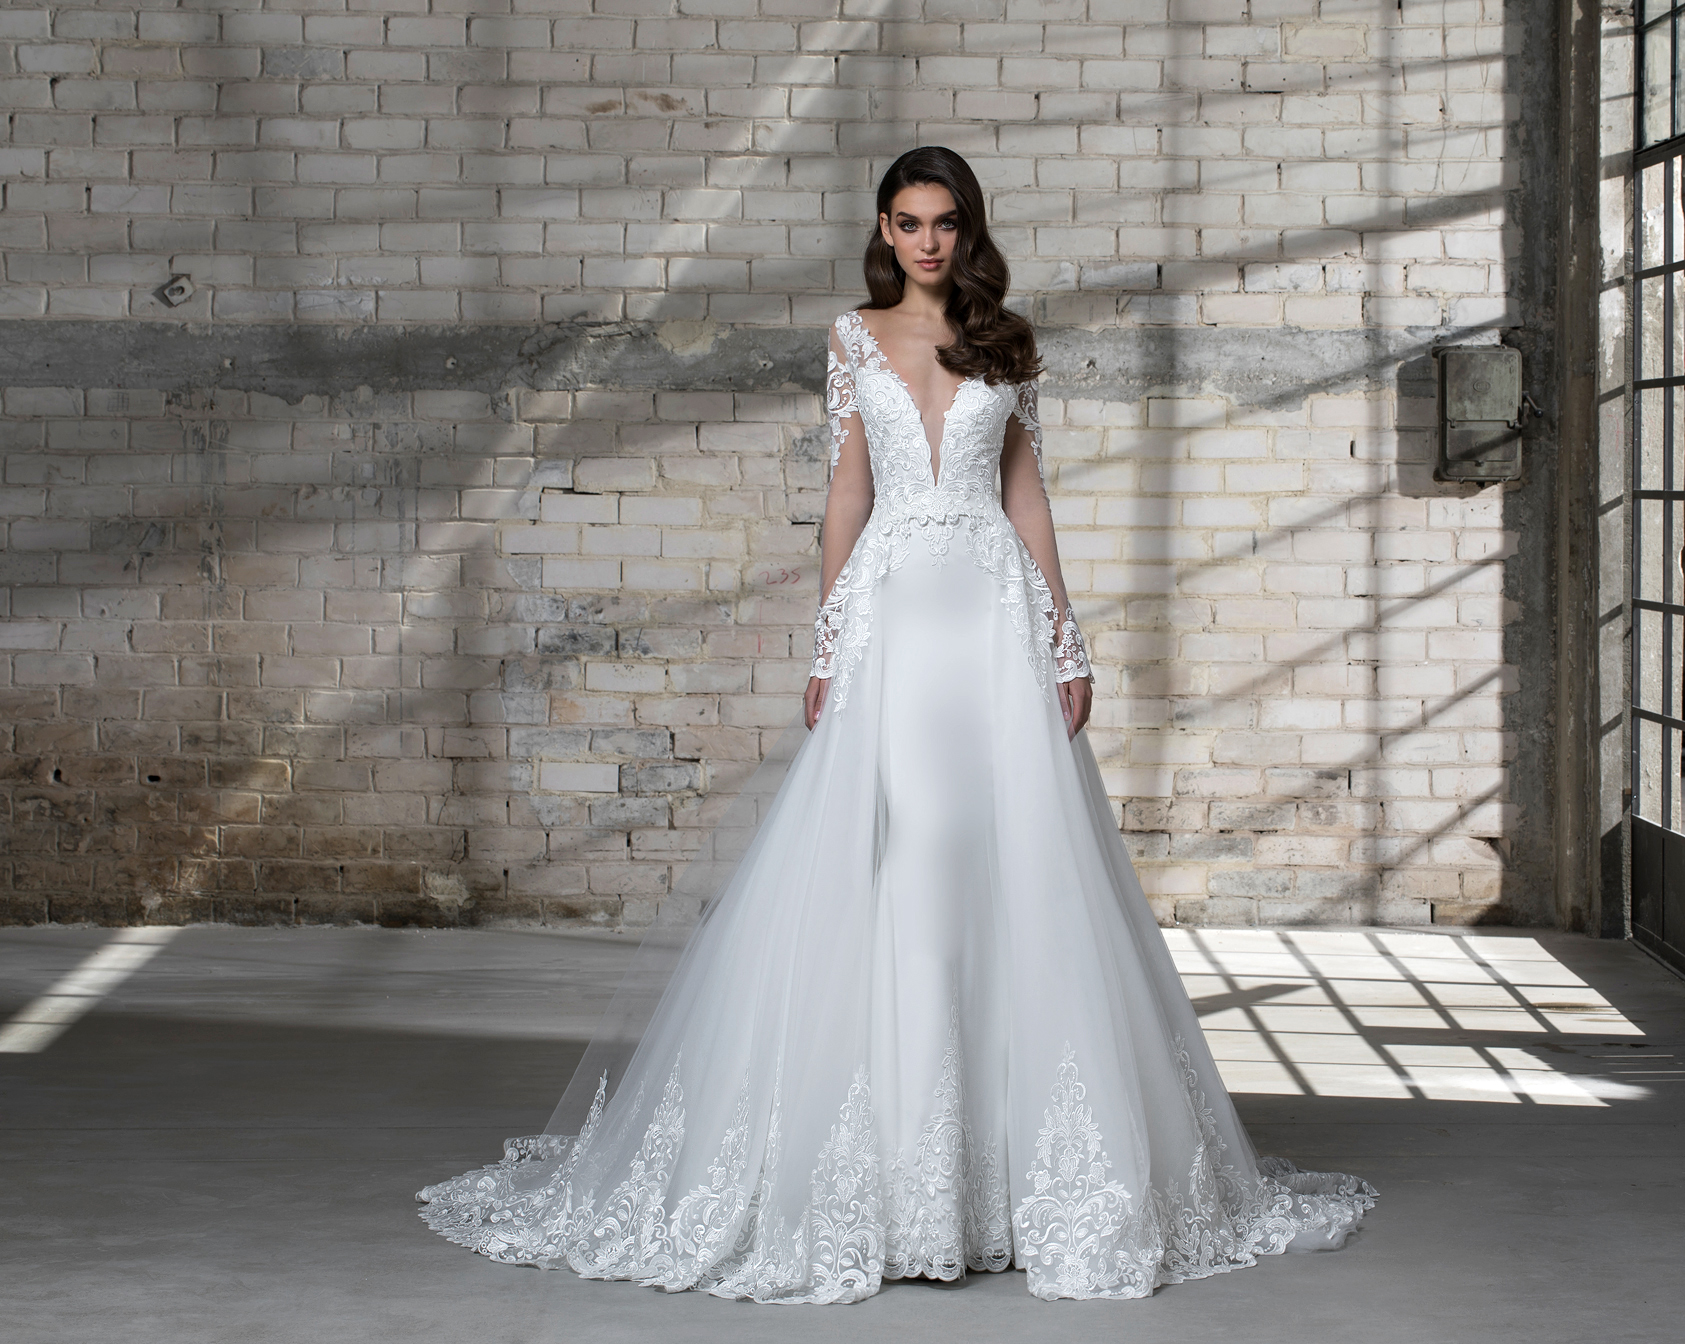 pnina tornai wedding dress spring 2019 deep v ta-line long sleeves